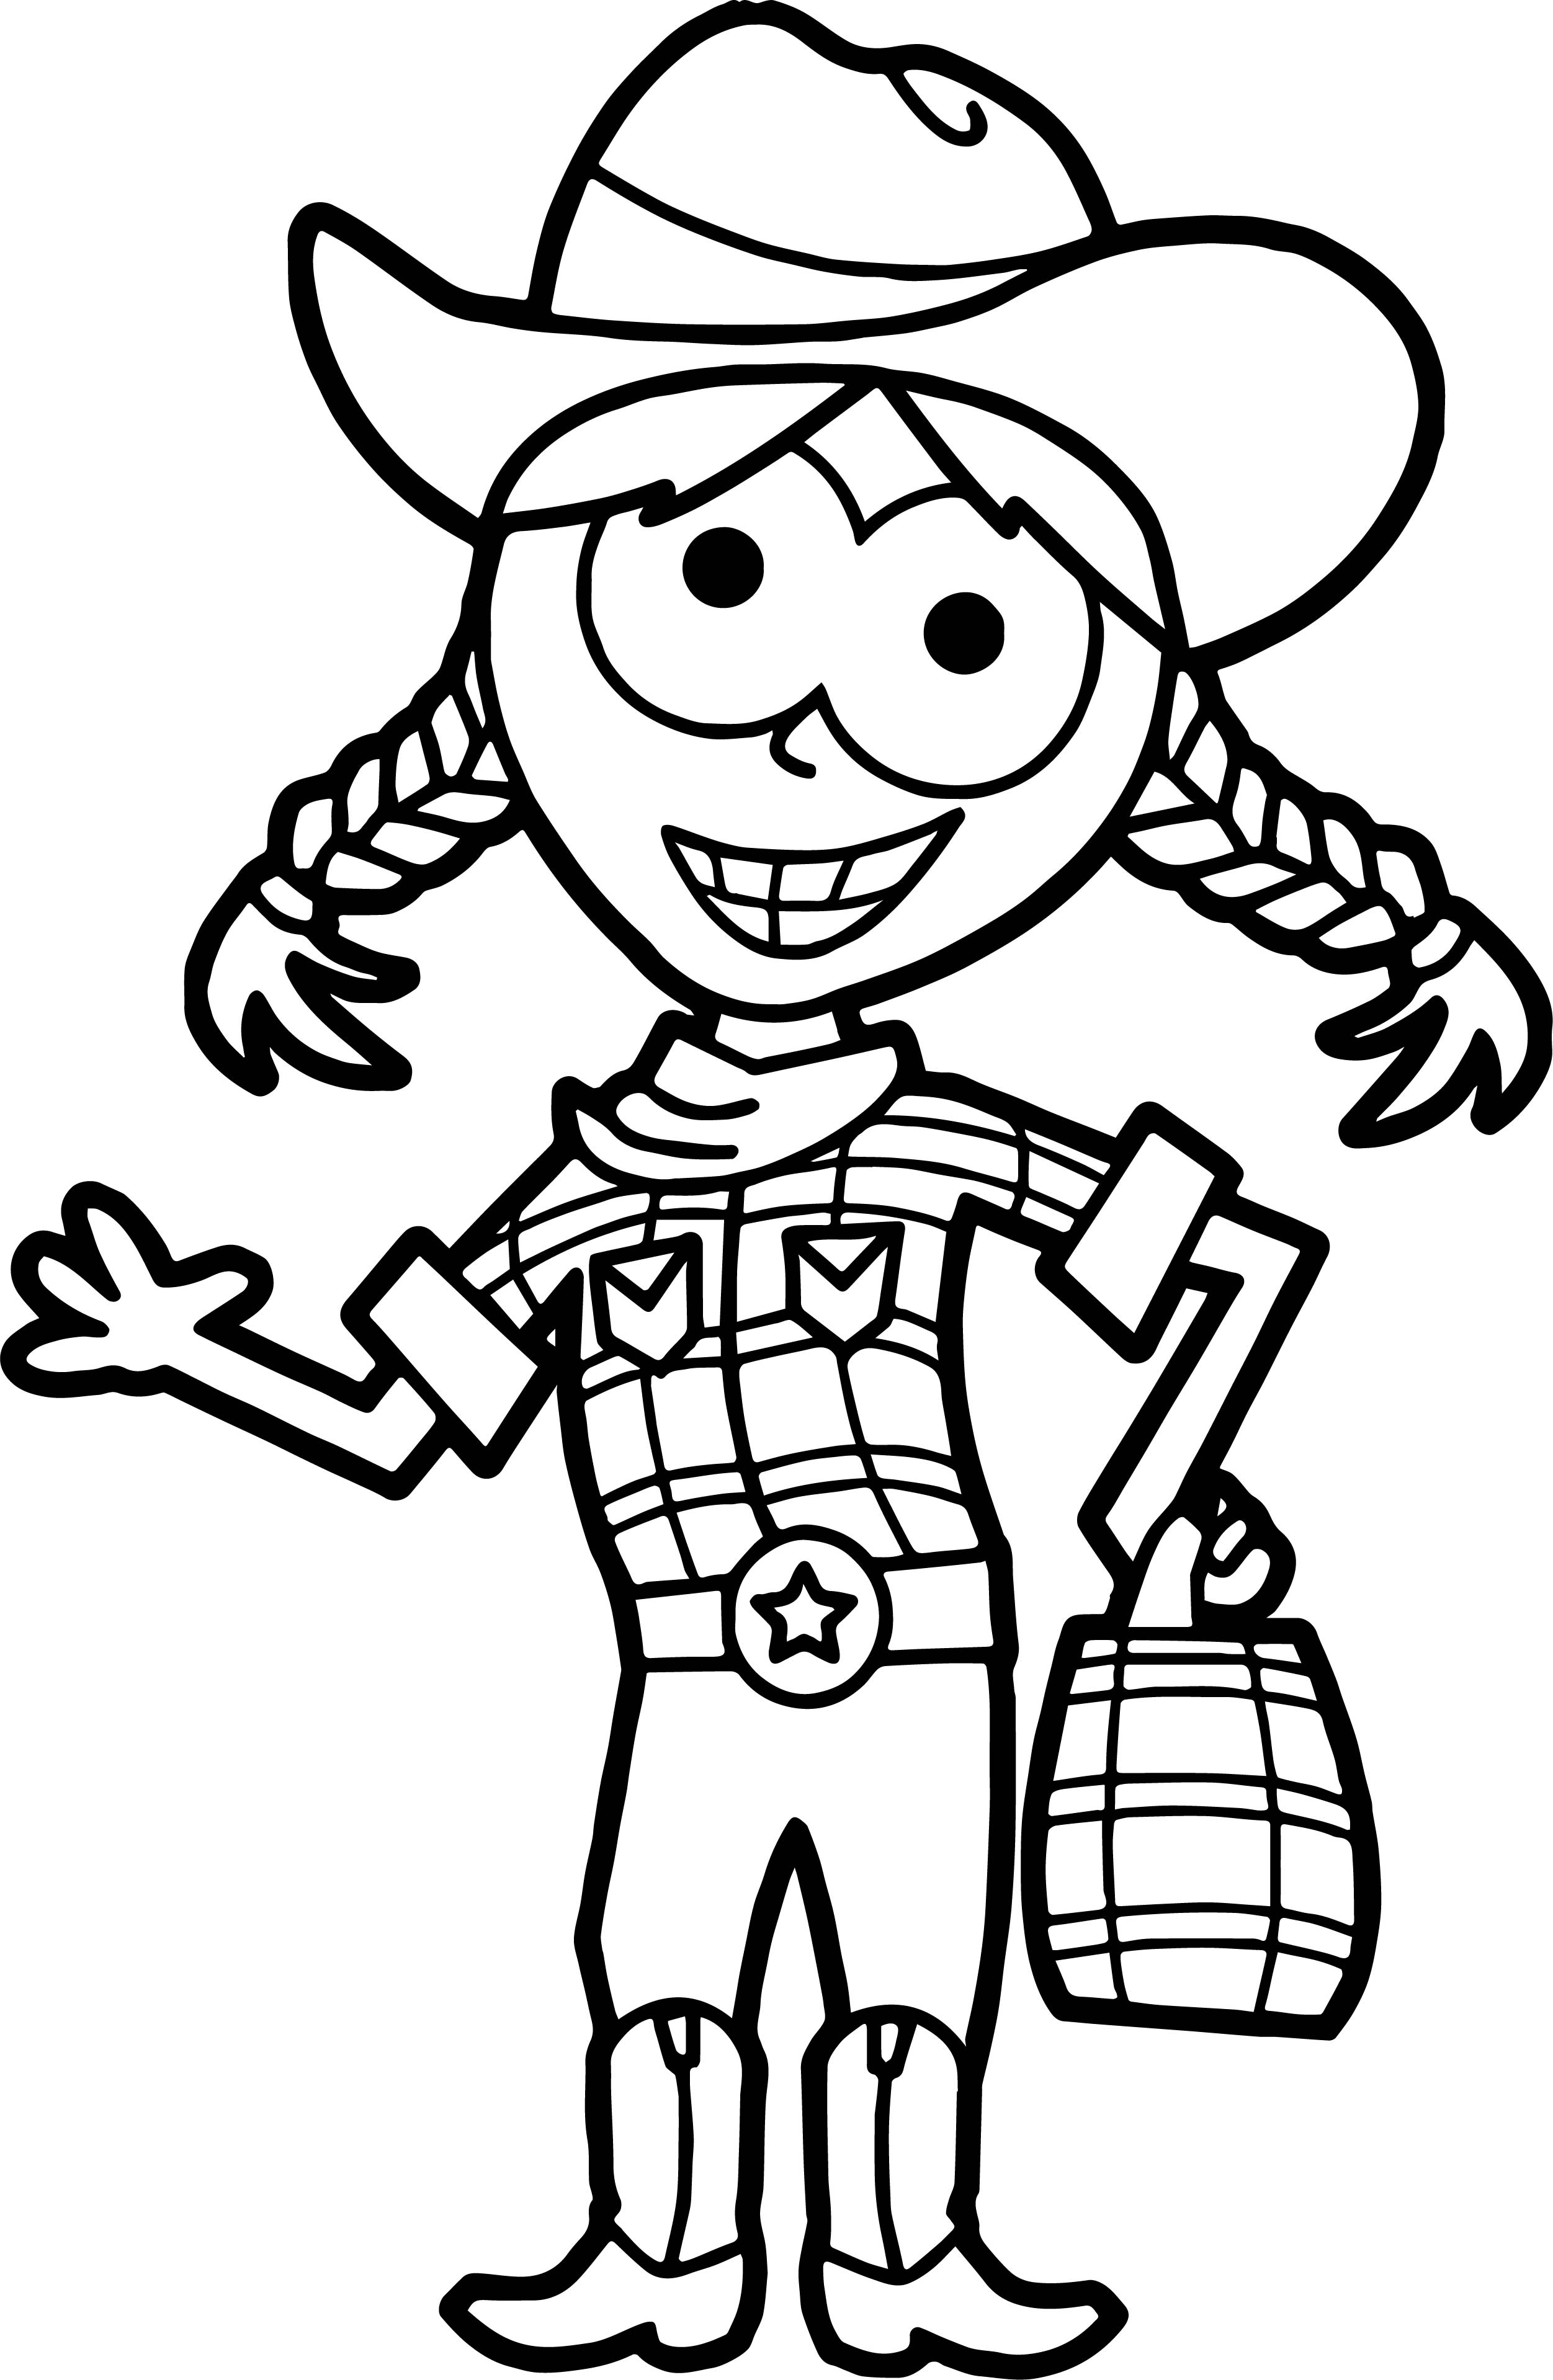 Home Free Halloween Trick Or Treat Cow Girl Free Coloring destiné Trick Or Treat Coloring Book: Trick Or